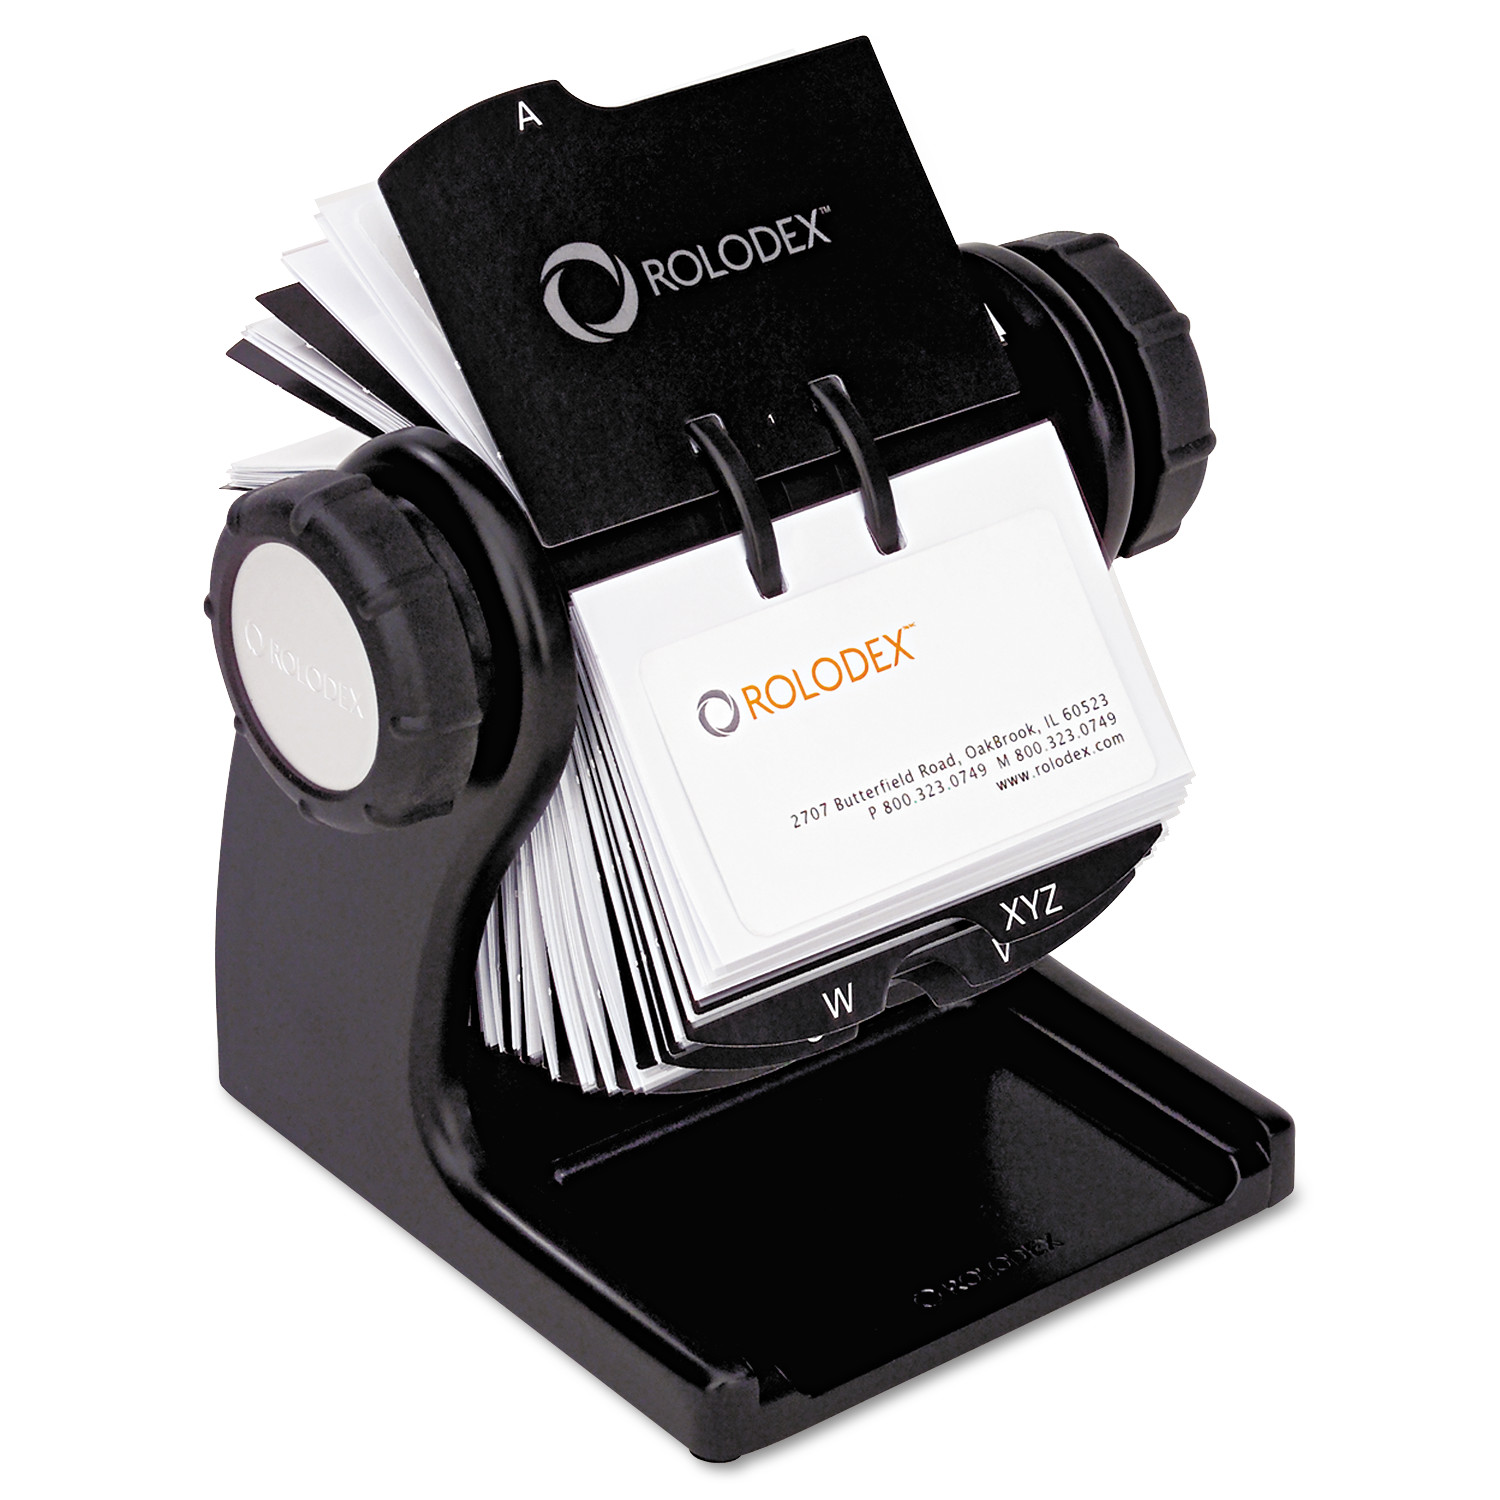 Rolodex Wood Tones Open Rotary Business Card File Holds 400 2 5/8 x 4 Cards, Black -ROL1734238